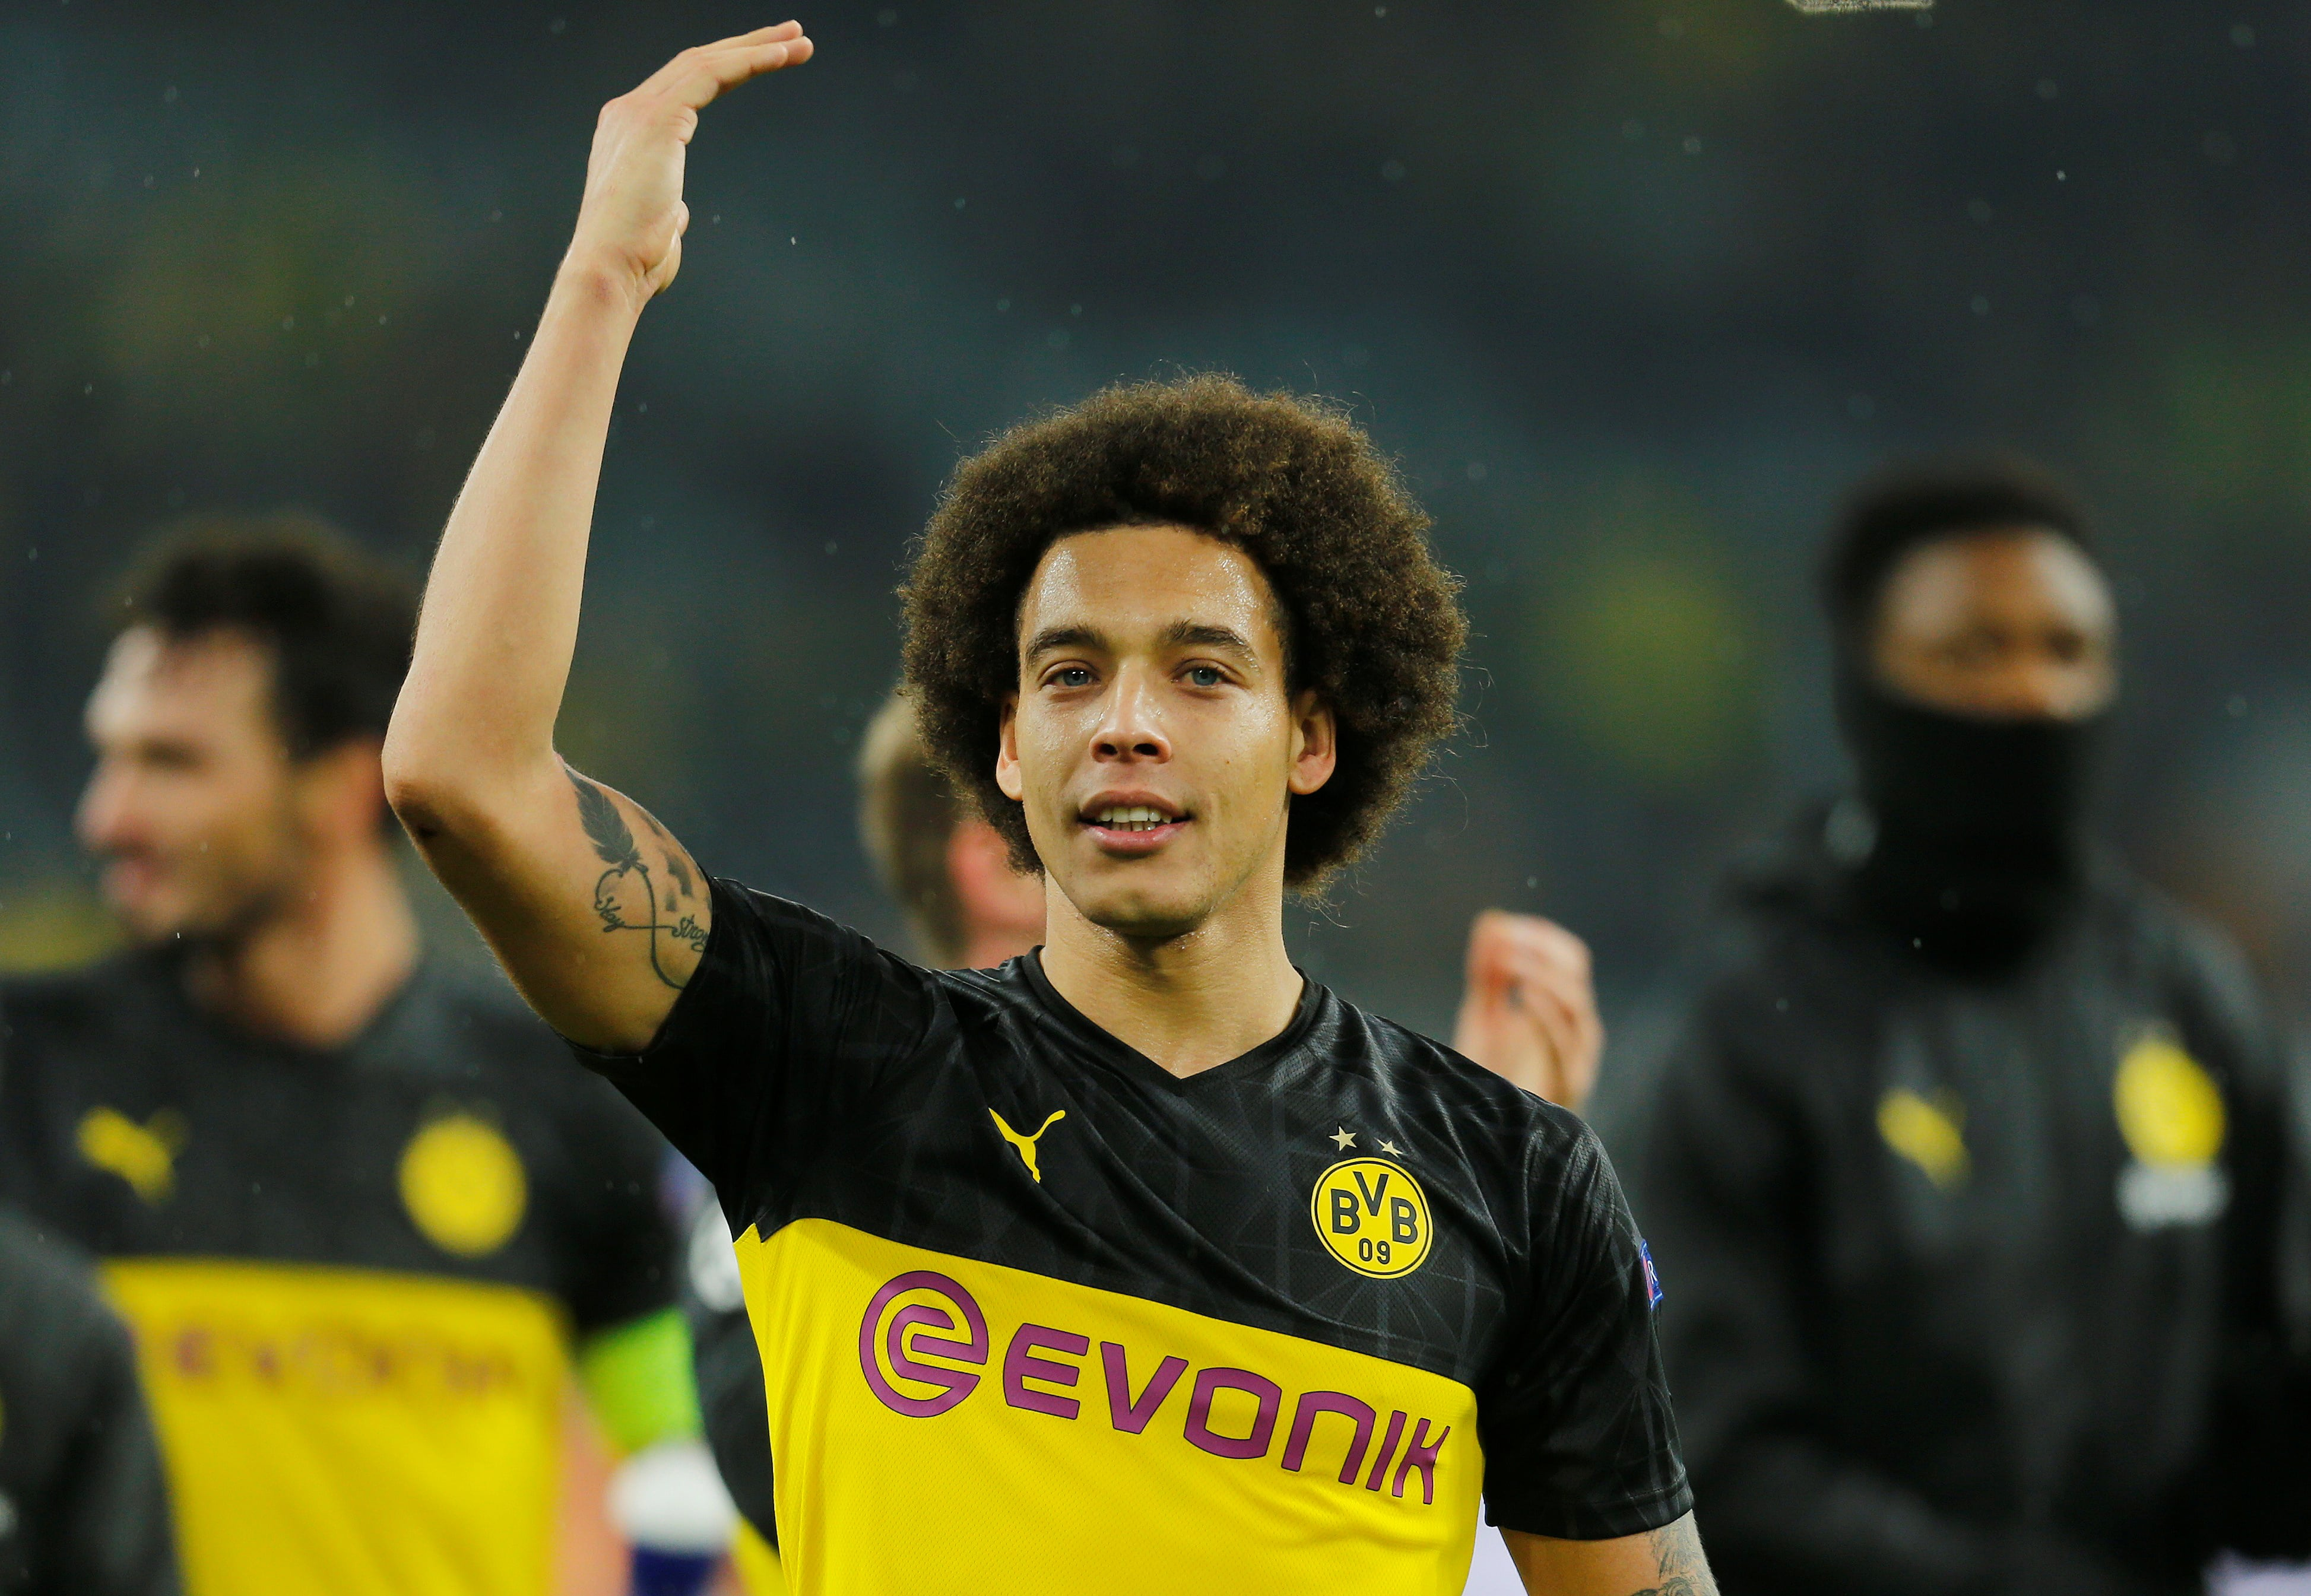 Borussia Dortmund's Axel Witsel ruled out for rest of year-min